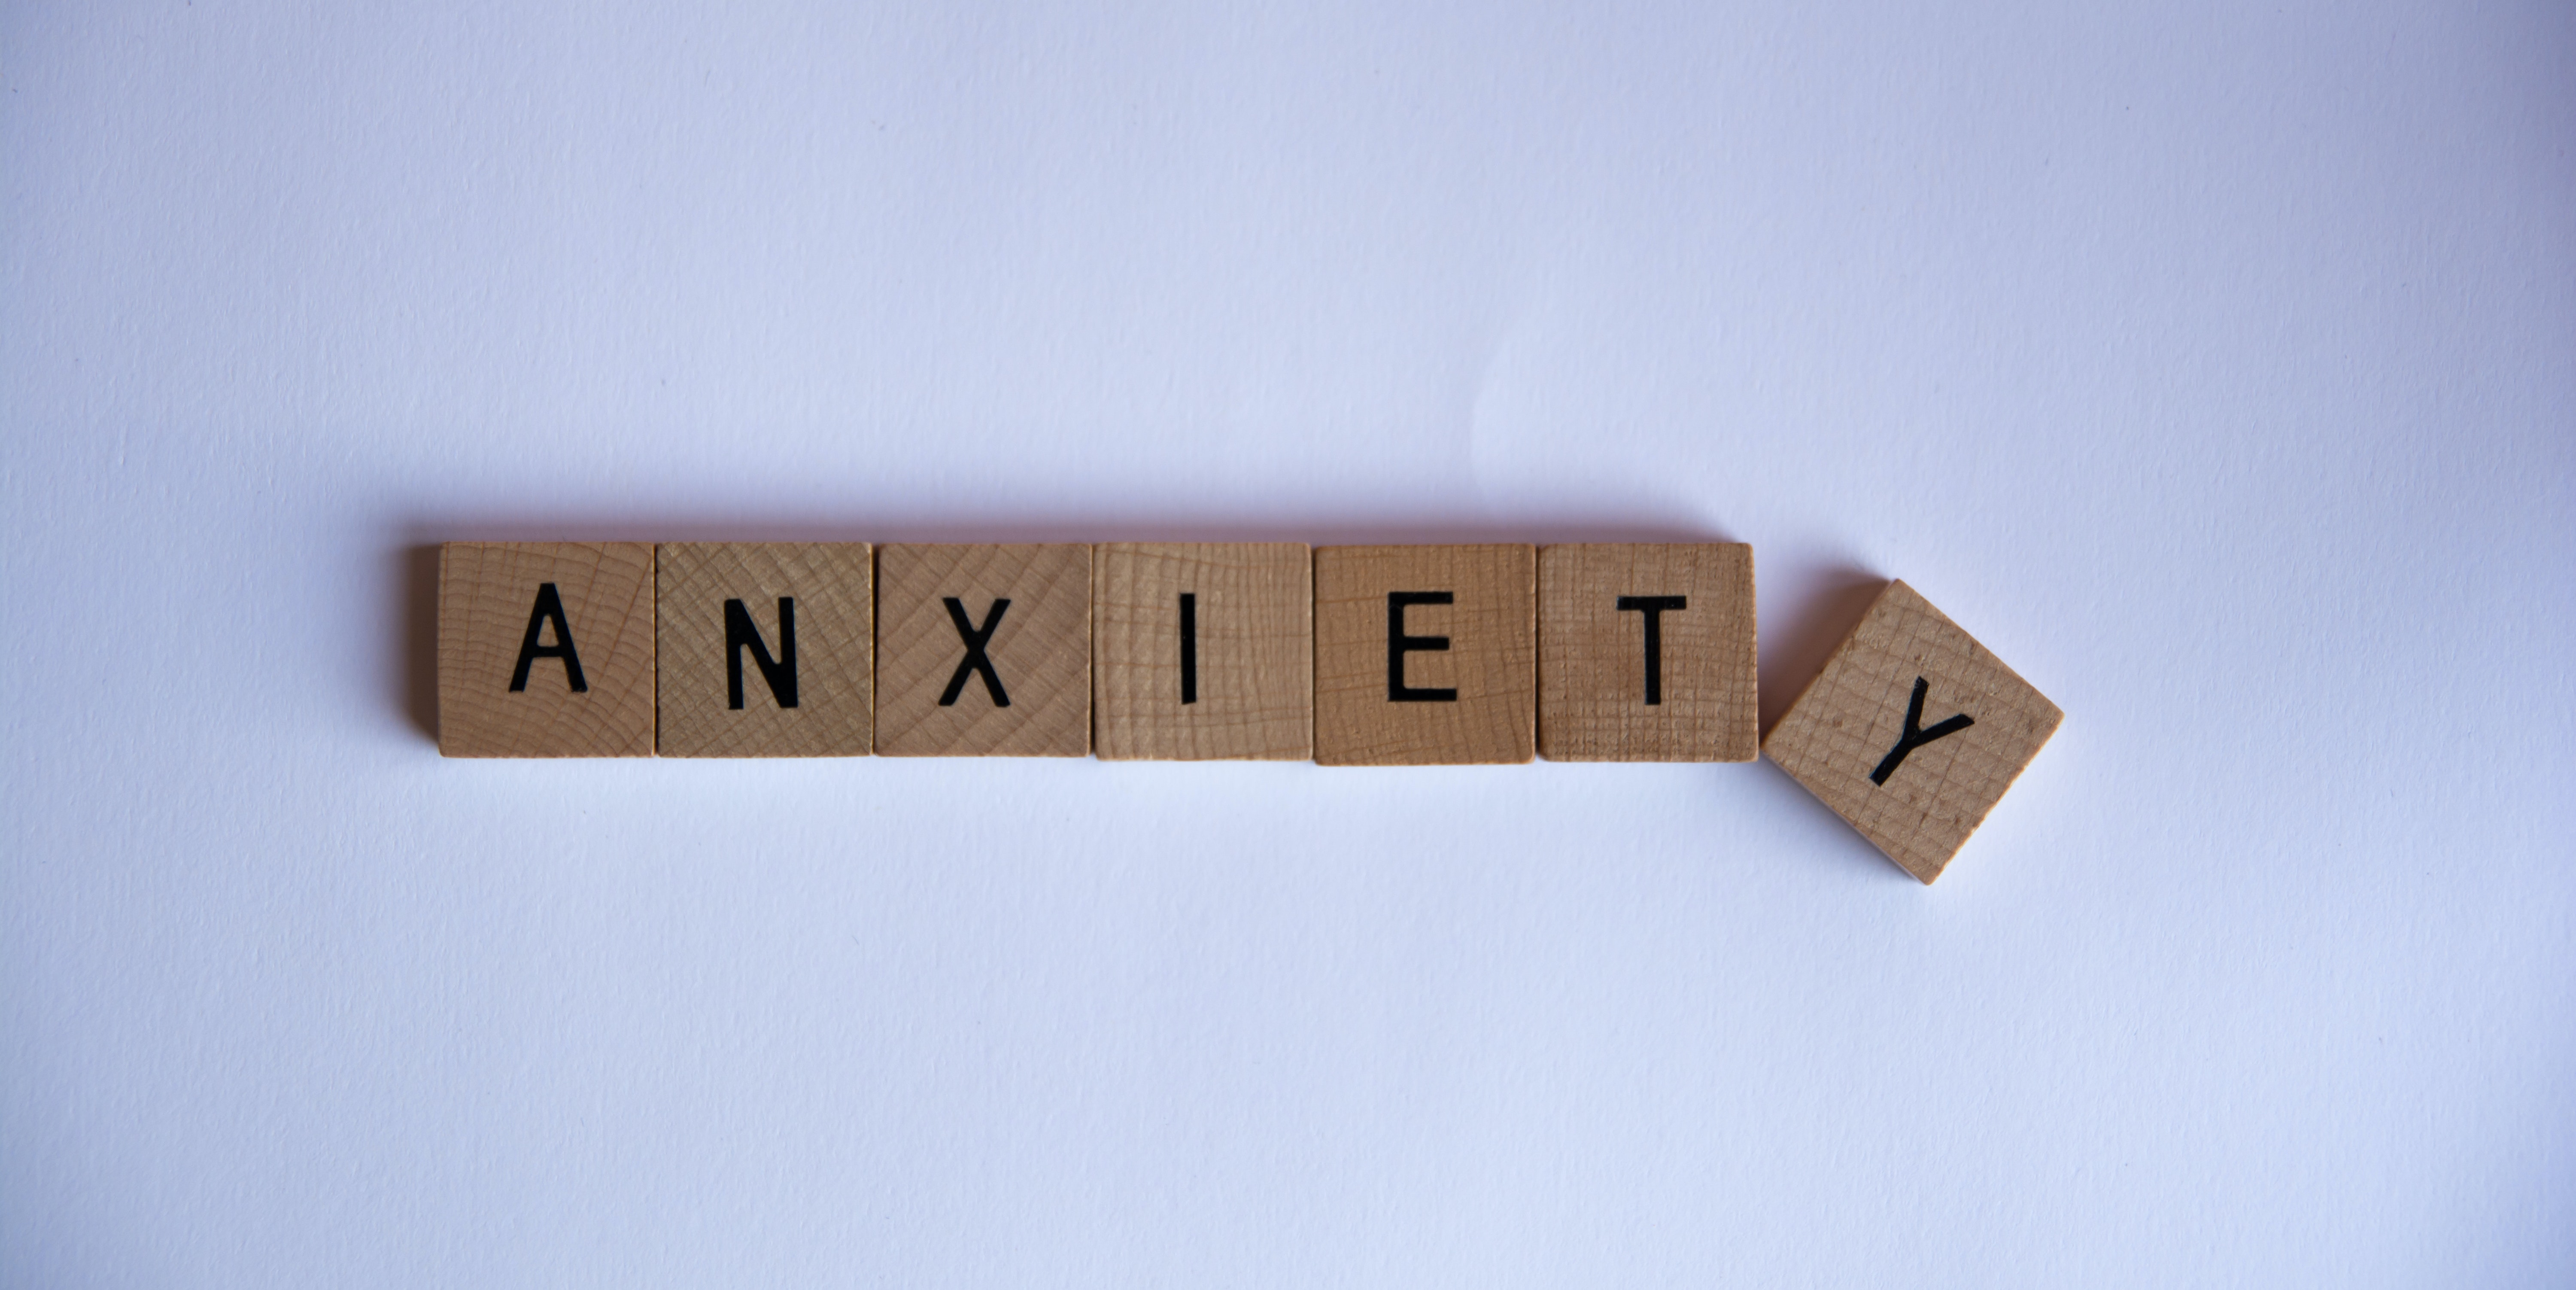 How to Beat Anxiety, According to Science